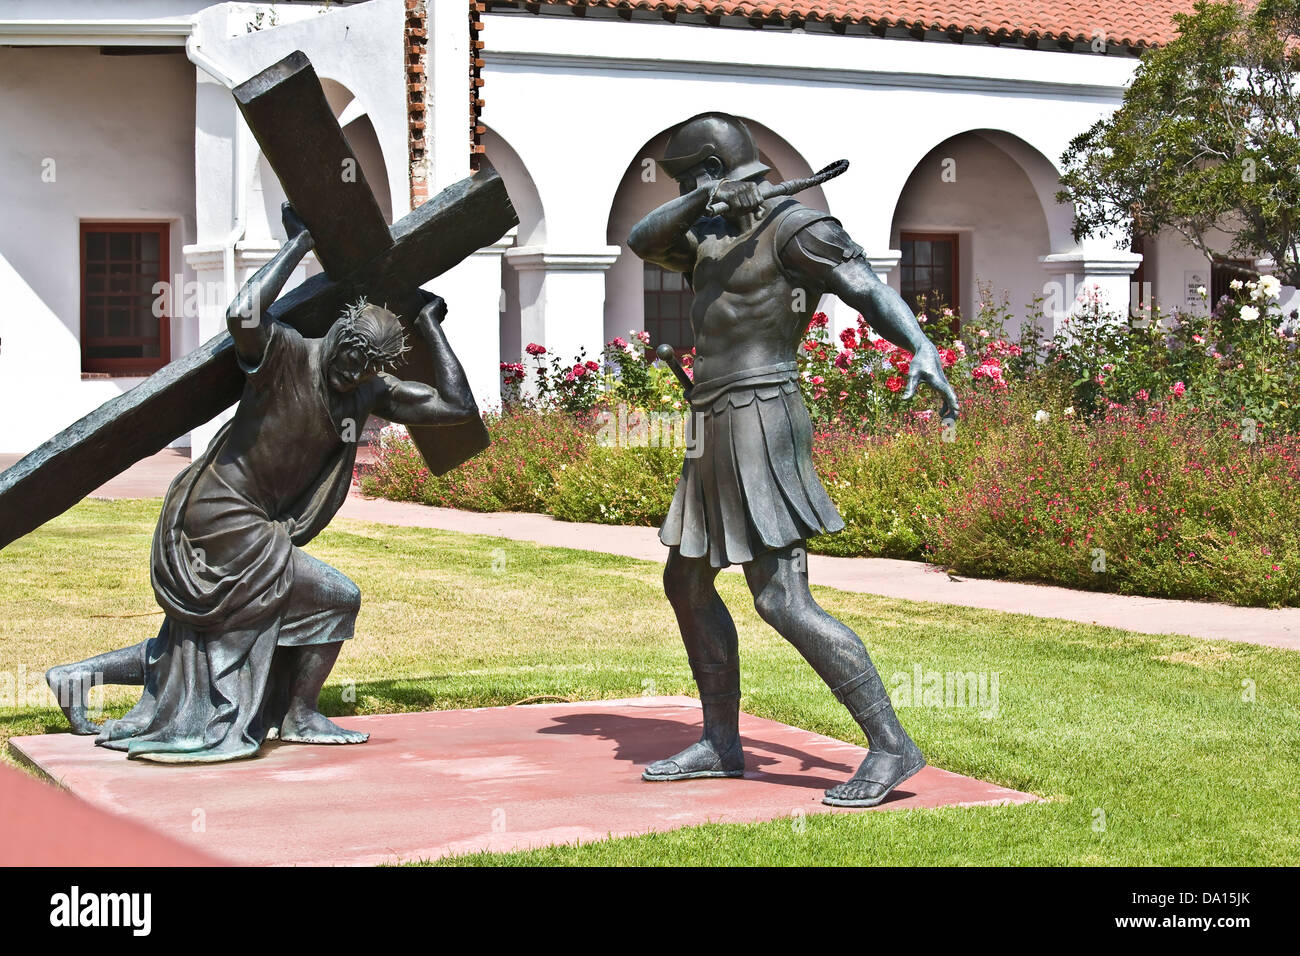 Statue of the legend of Christ carrying a cross (one of the 'Passions of Christ'), on the grounds of Mission - Stock Image